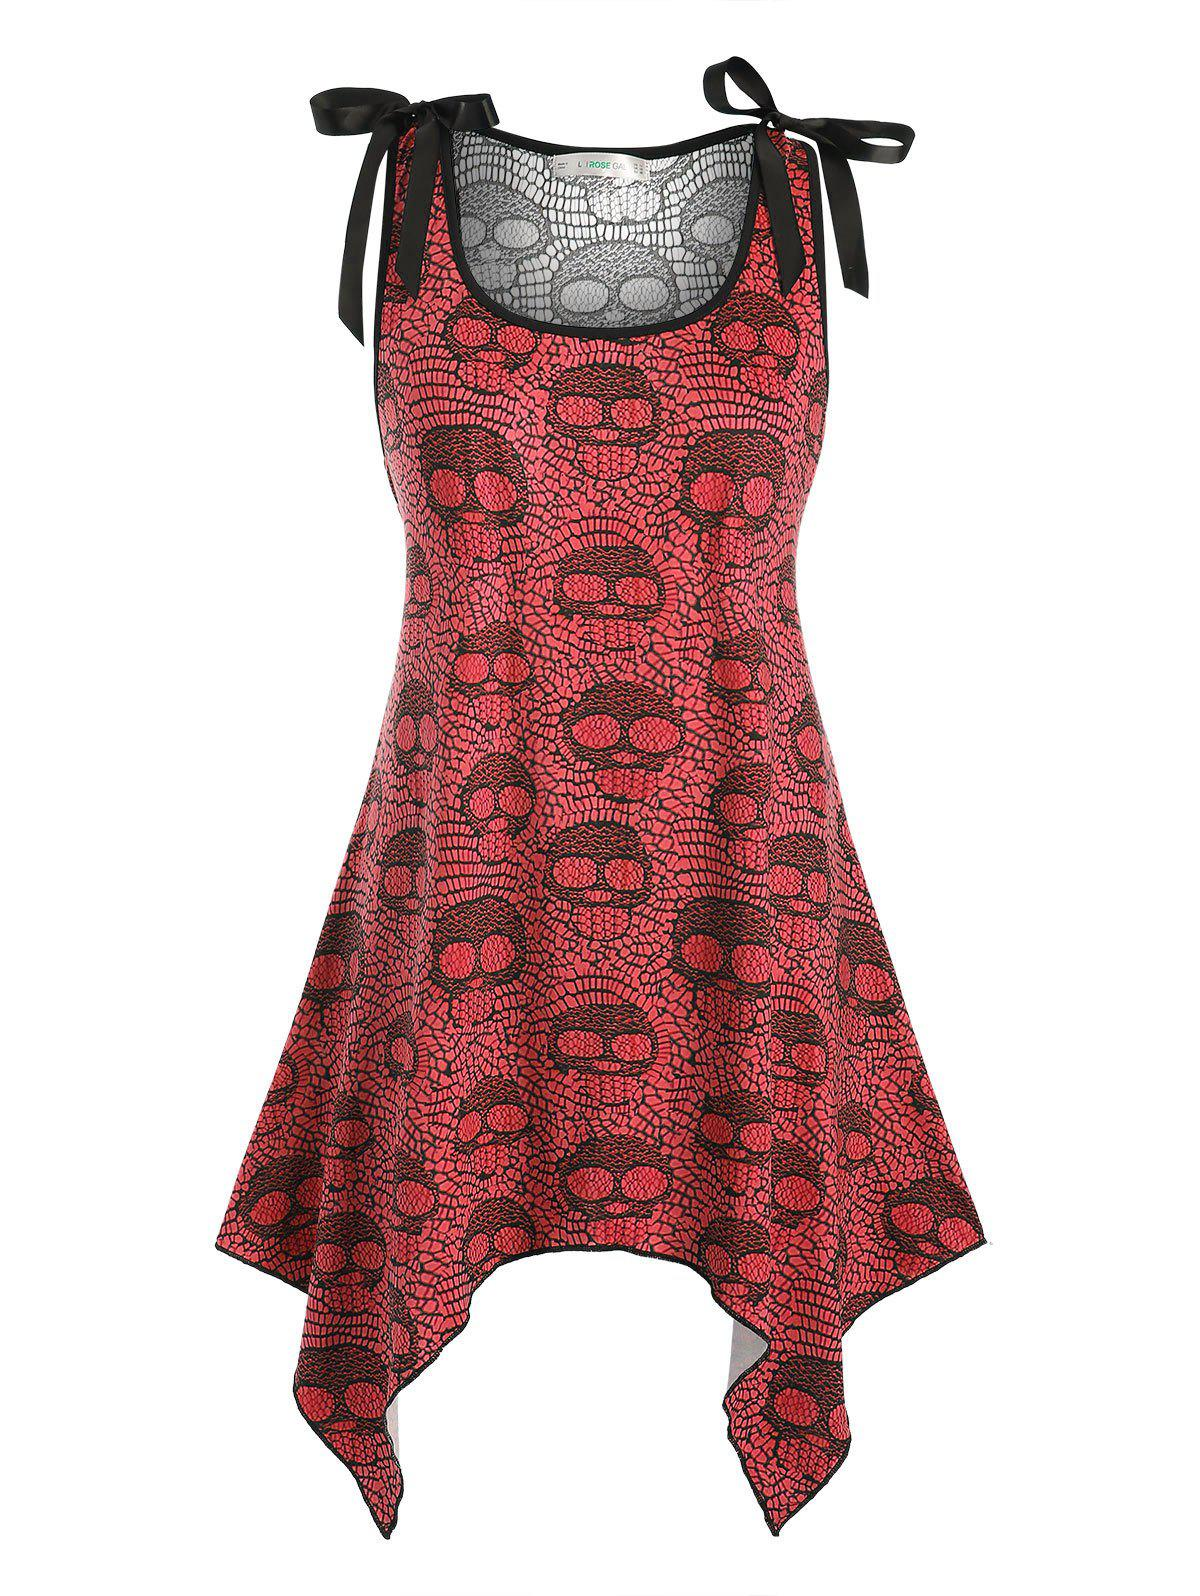 Lace Panel Bowknot Skull Halloween Plus Size Tank Top - RED L